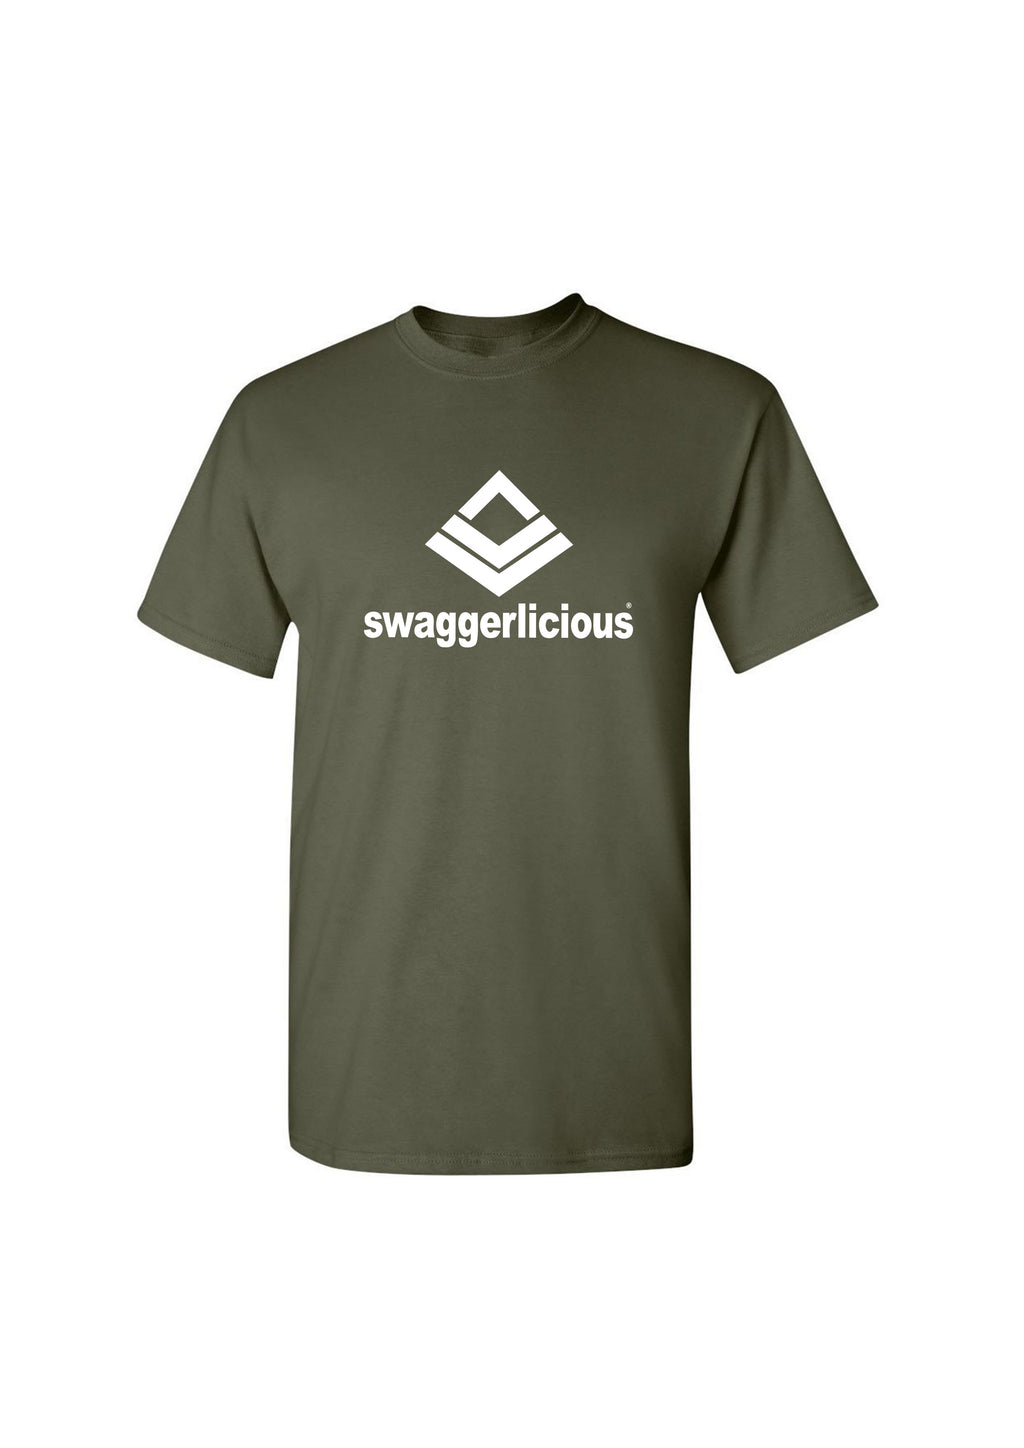 Swaggerlicious Classic Olive Green Sports Tee - swaggerlicious-clothing.com